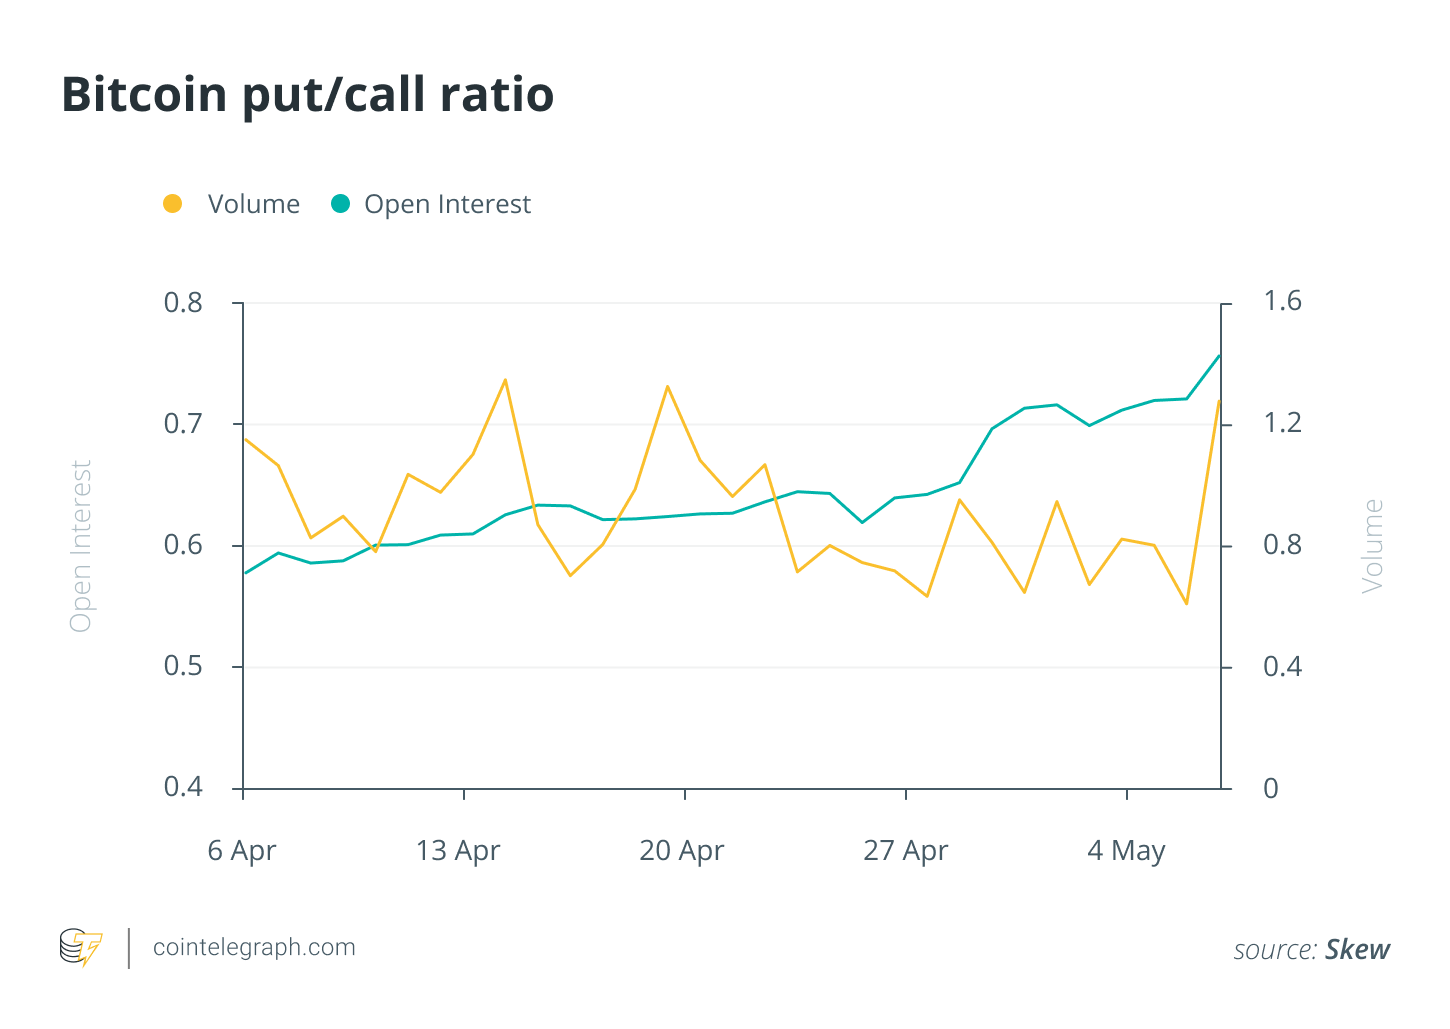 Bitcoin put/call ratio